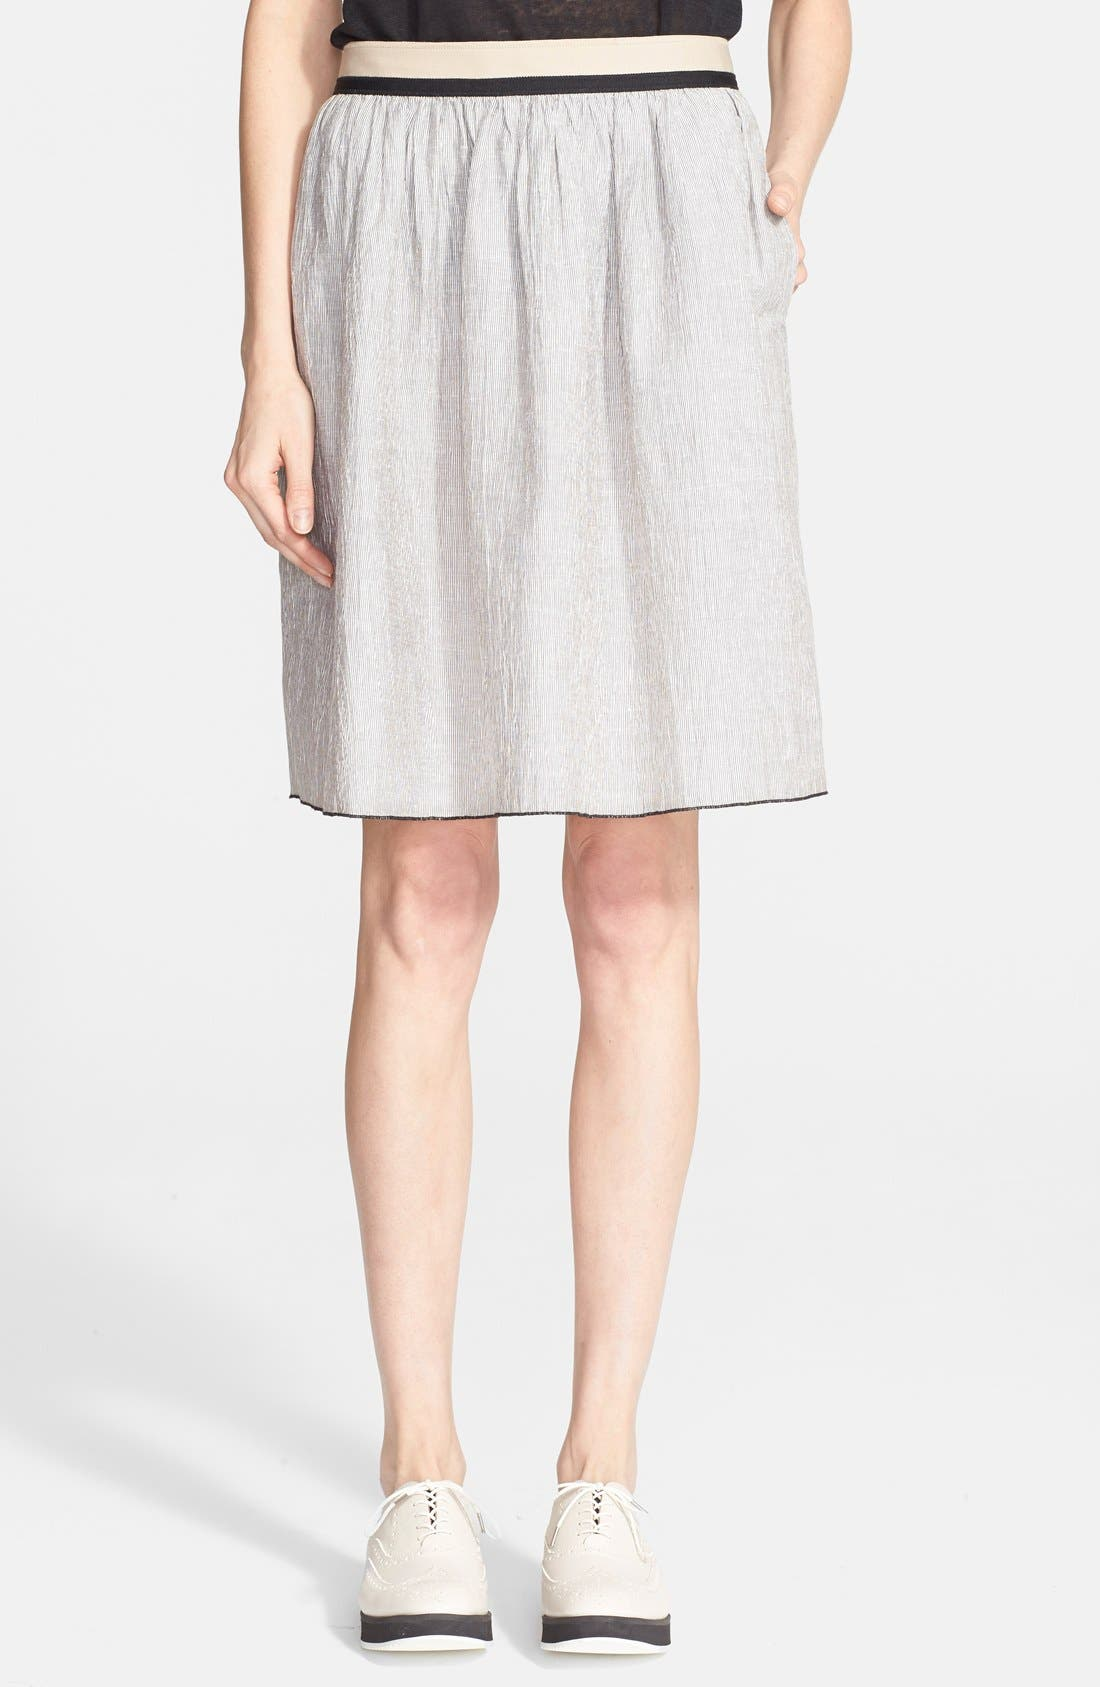 Alternate Image 1 Selected - rag & bone 'Svea' Linen Blend Full Skirt